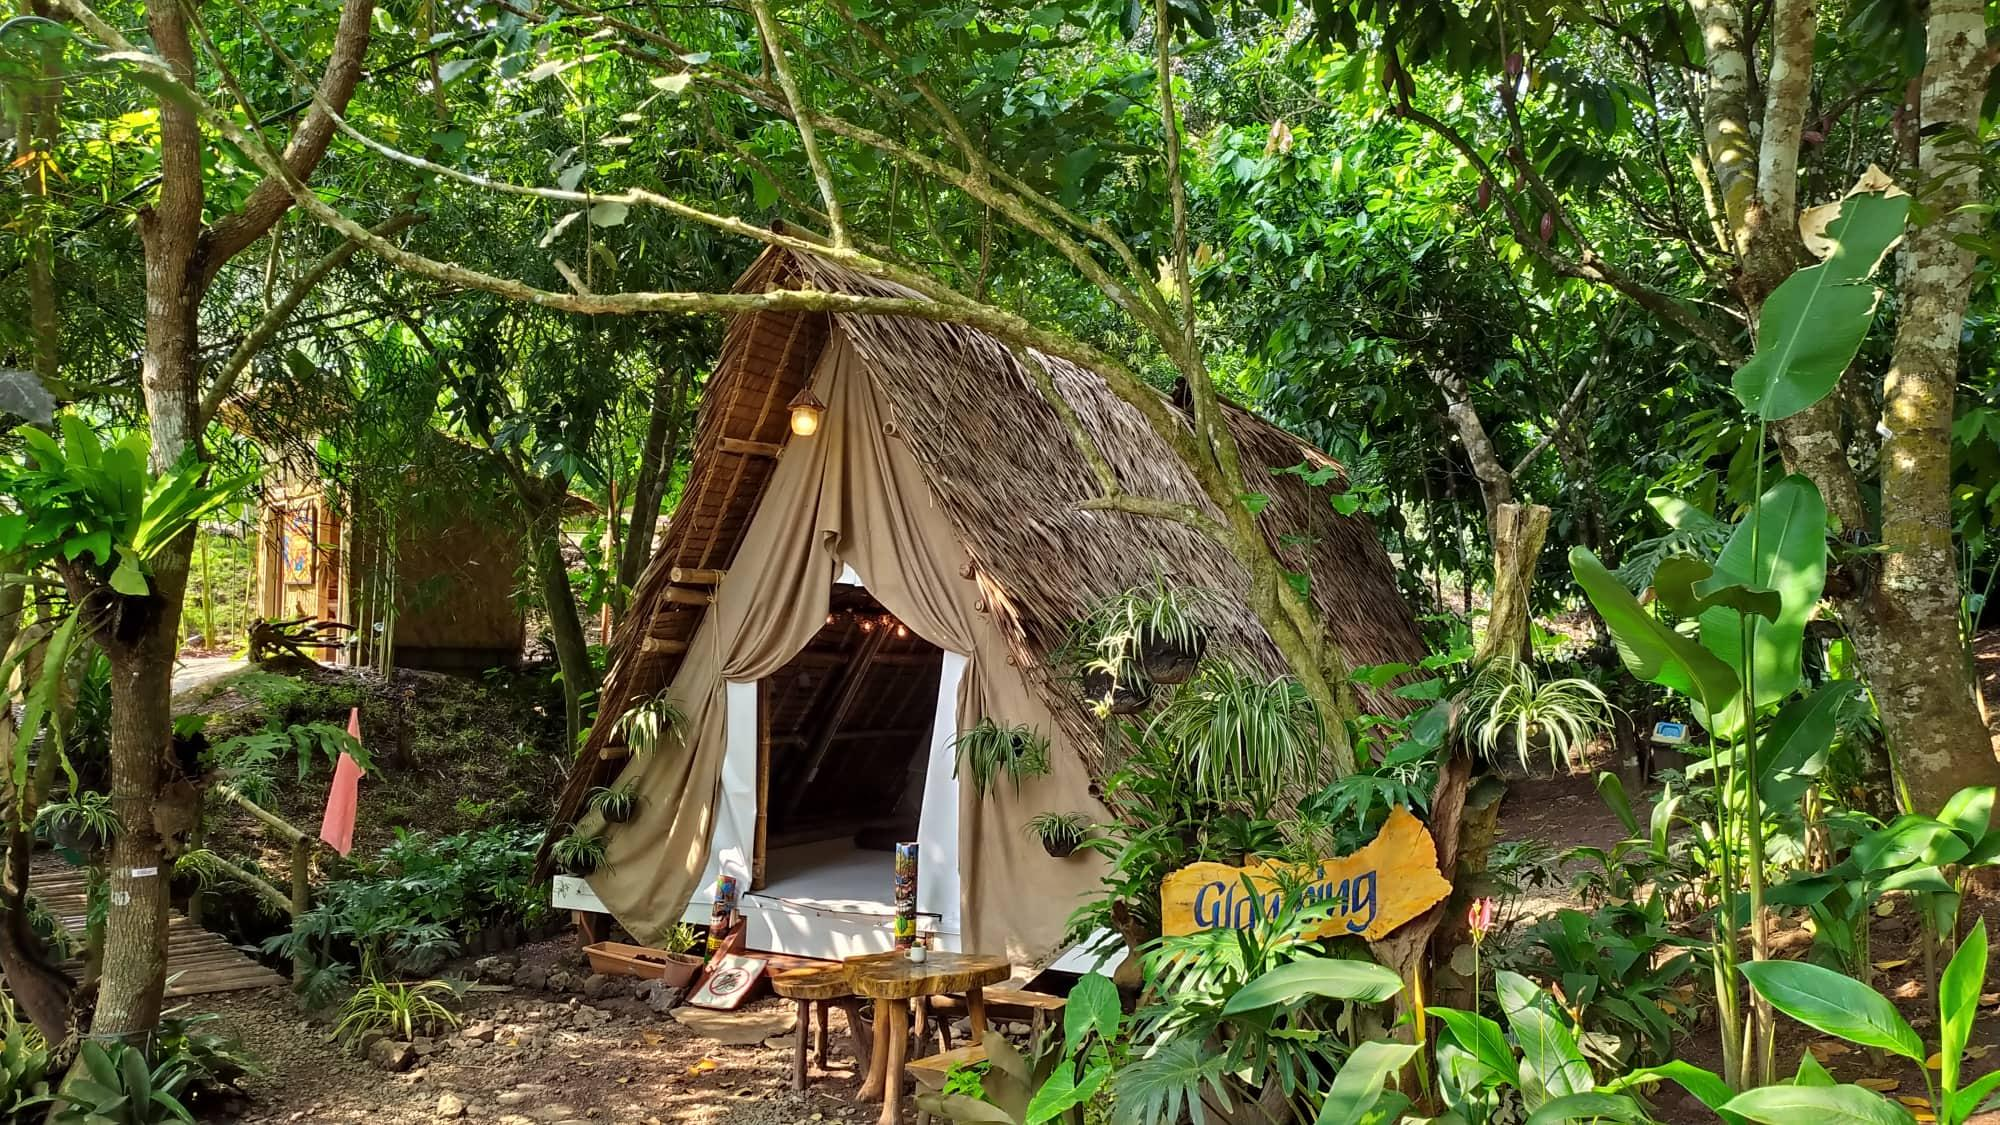 Alternative To Palawan's Island Beaches: Glamping And